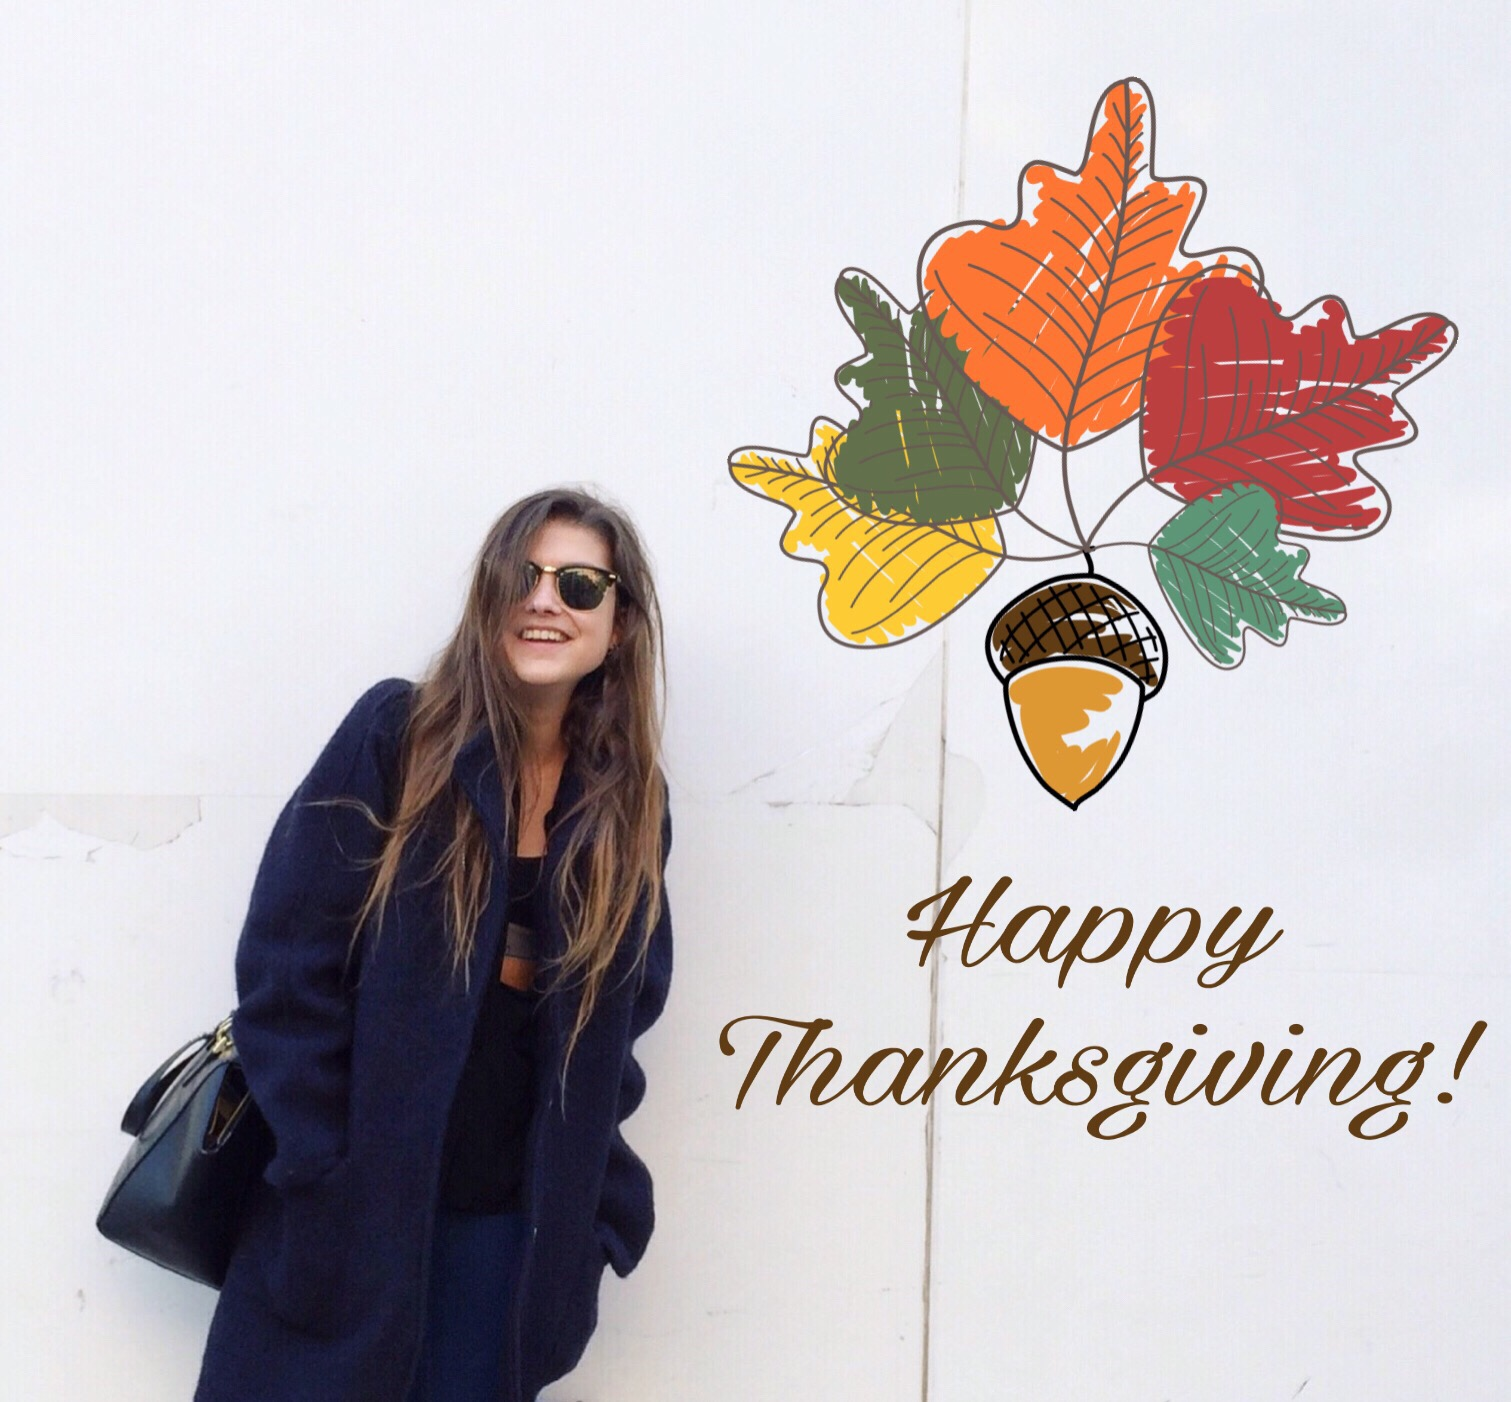 Free Thanksgiving Clipart from PicsArt